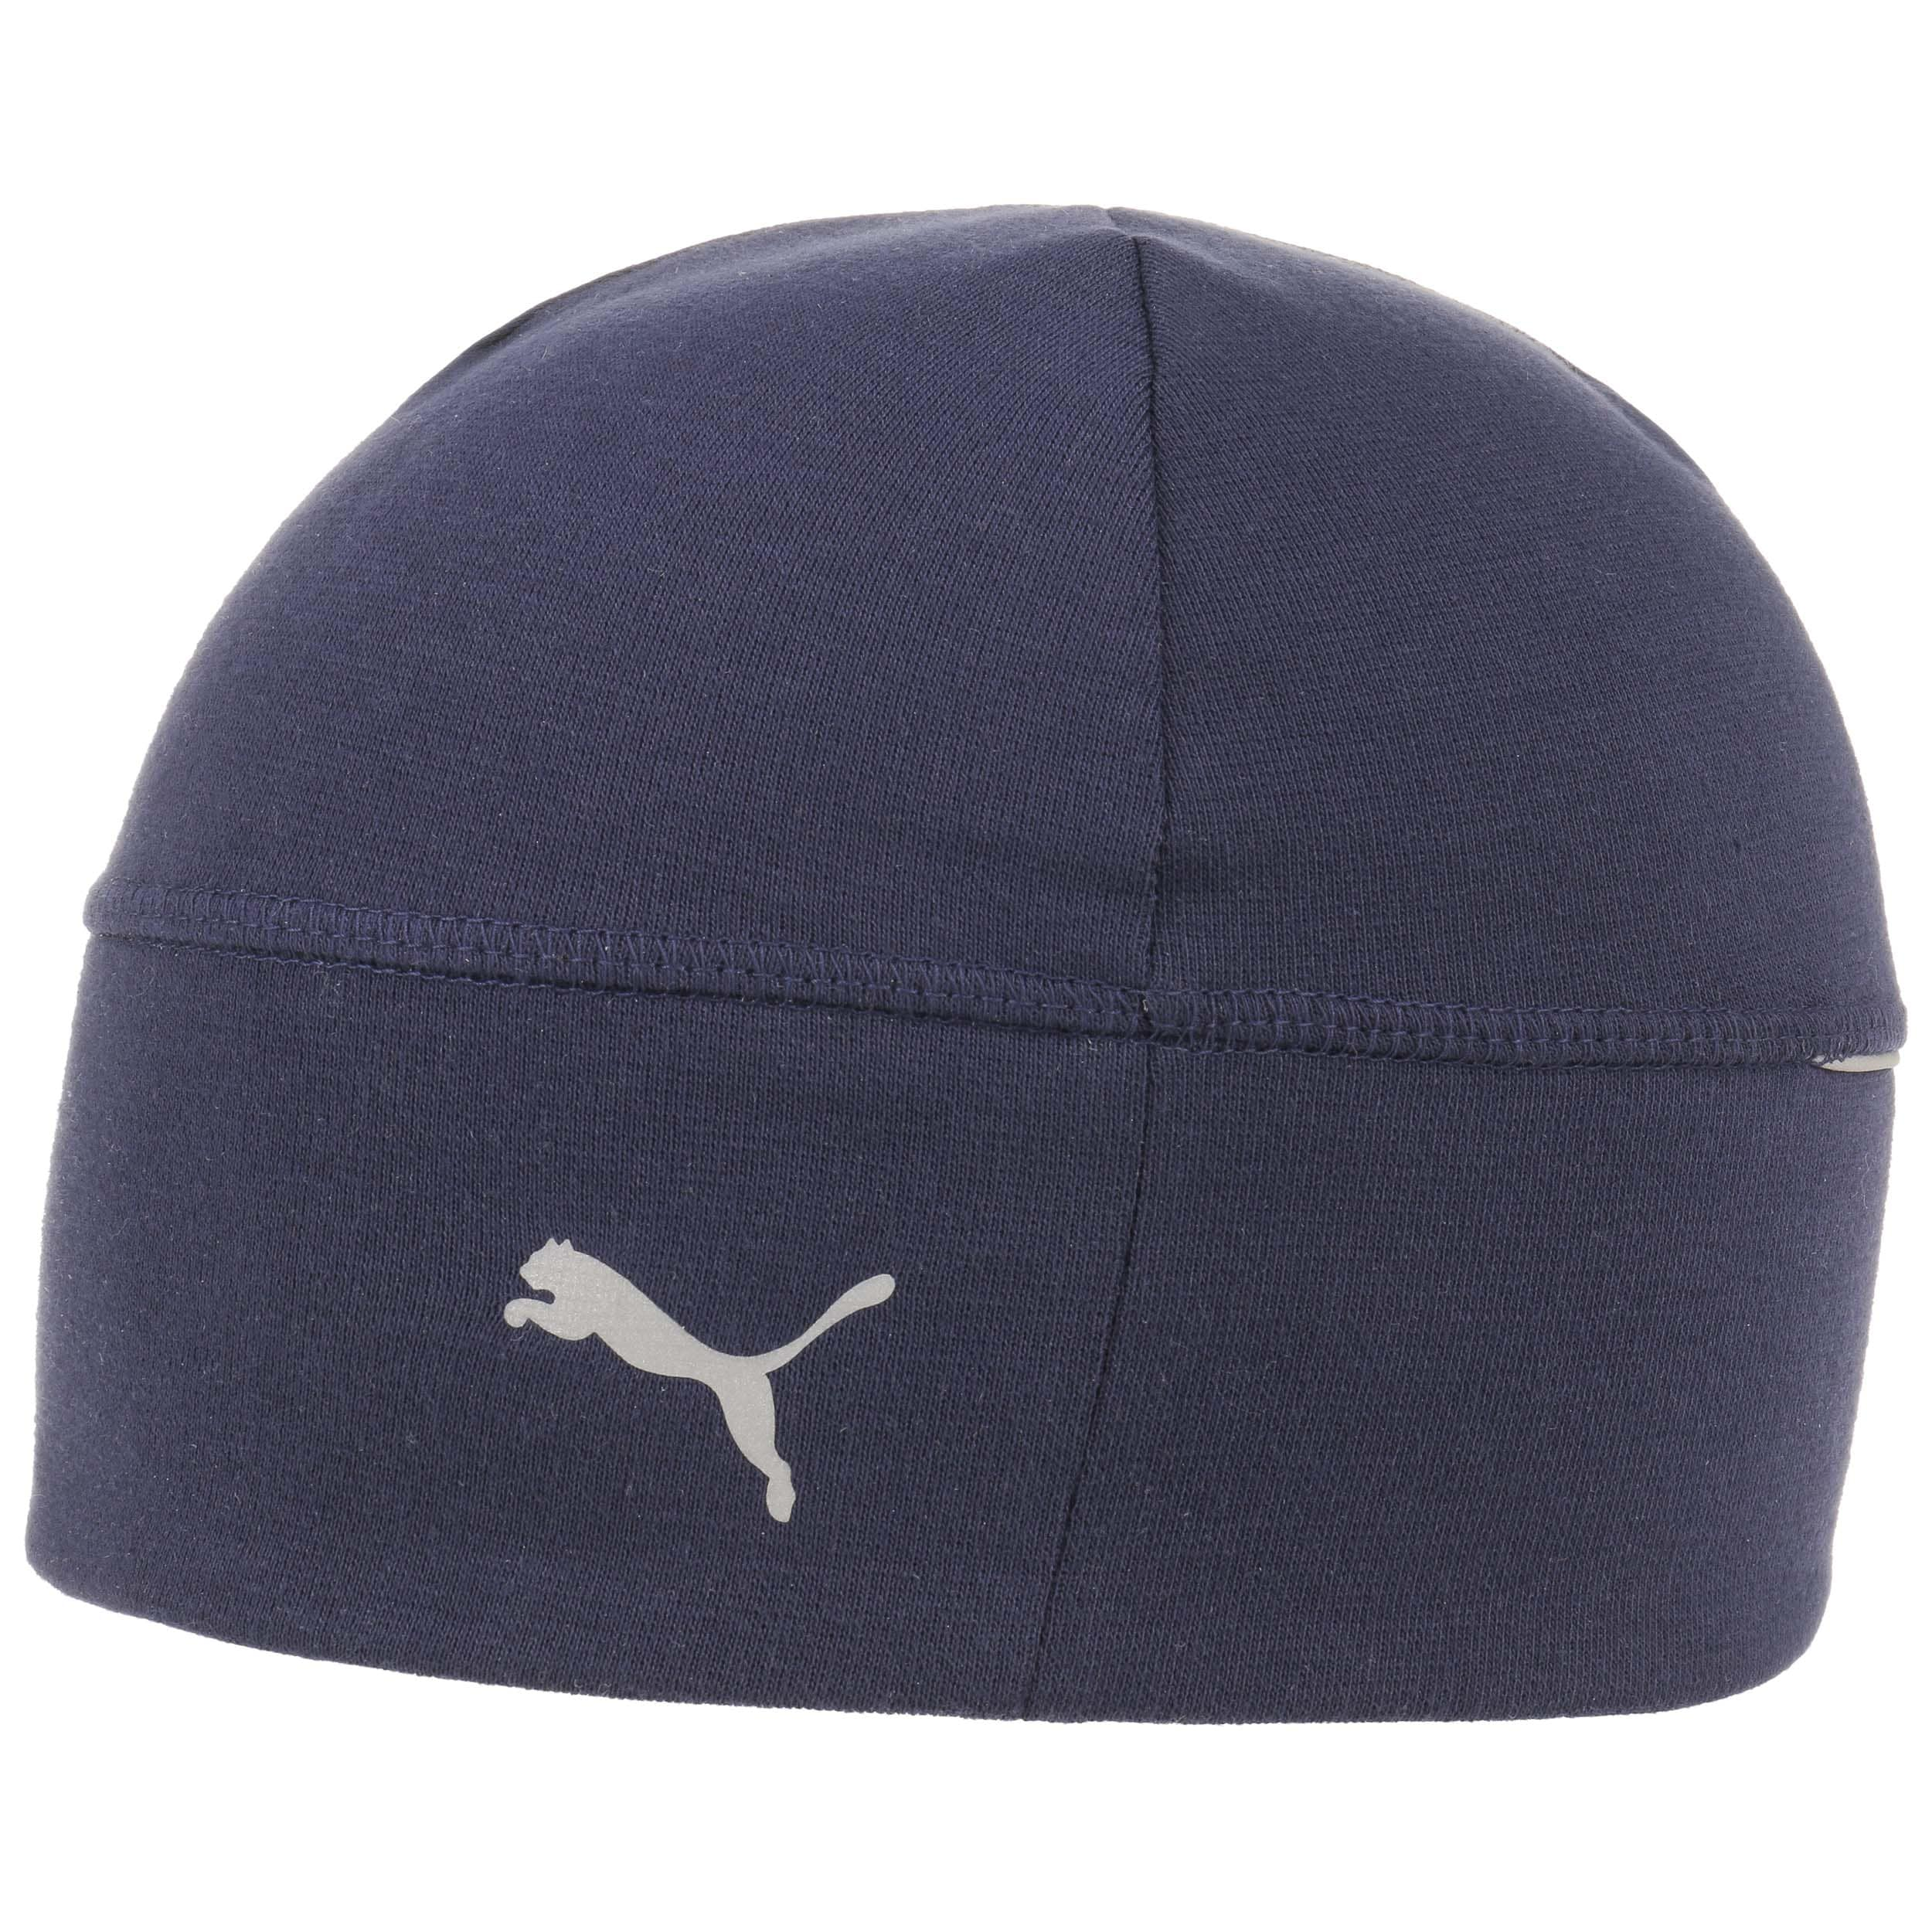 ... Reflective Running Beanie Hat by PUMA - navy 3 ... 766385c933e